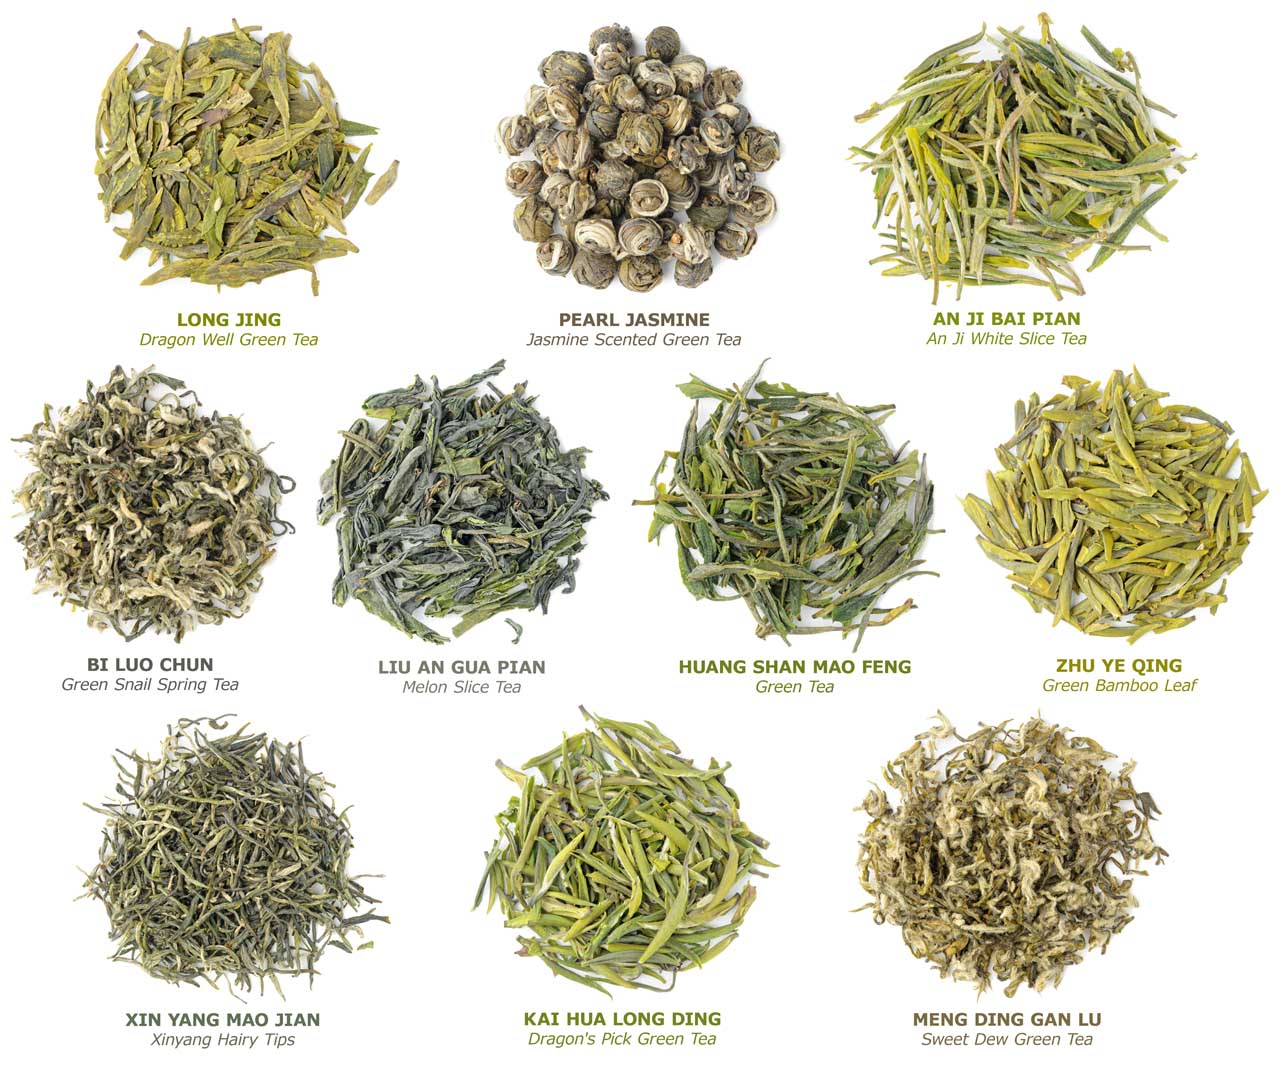 Chinese Green Tea Varieties | Foodal.com